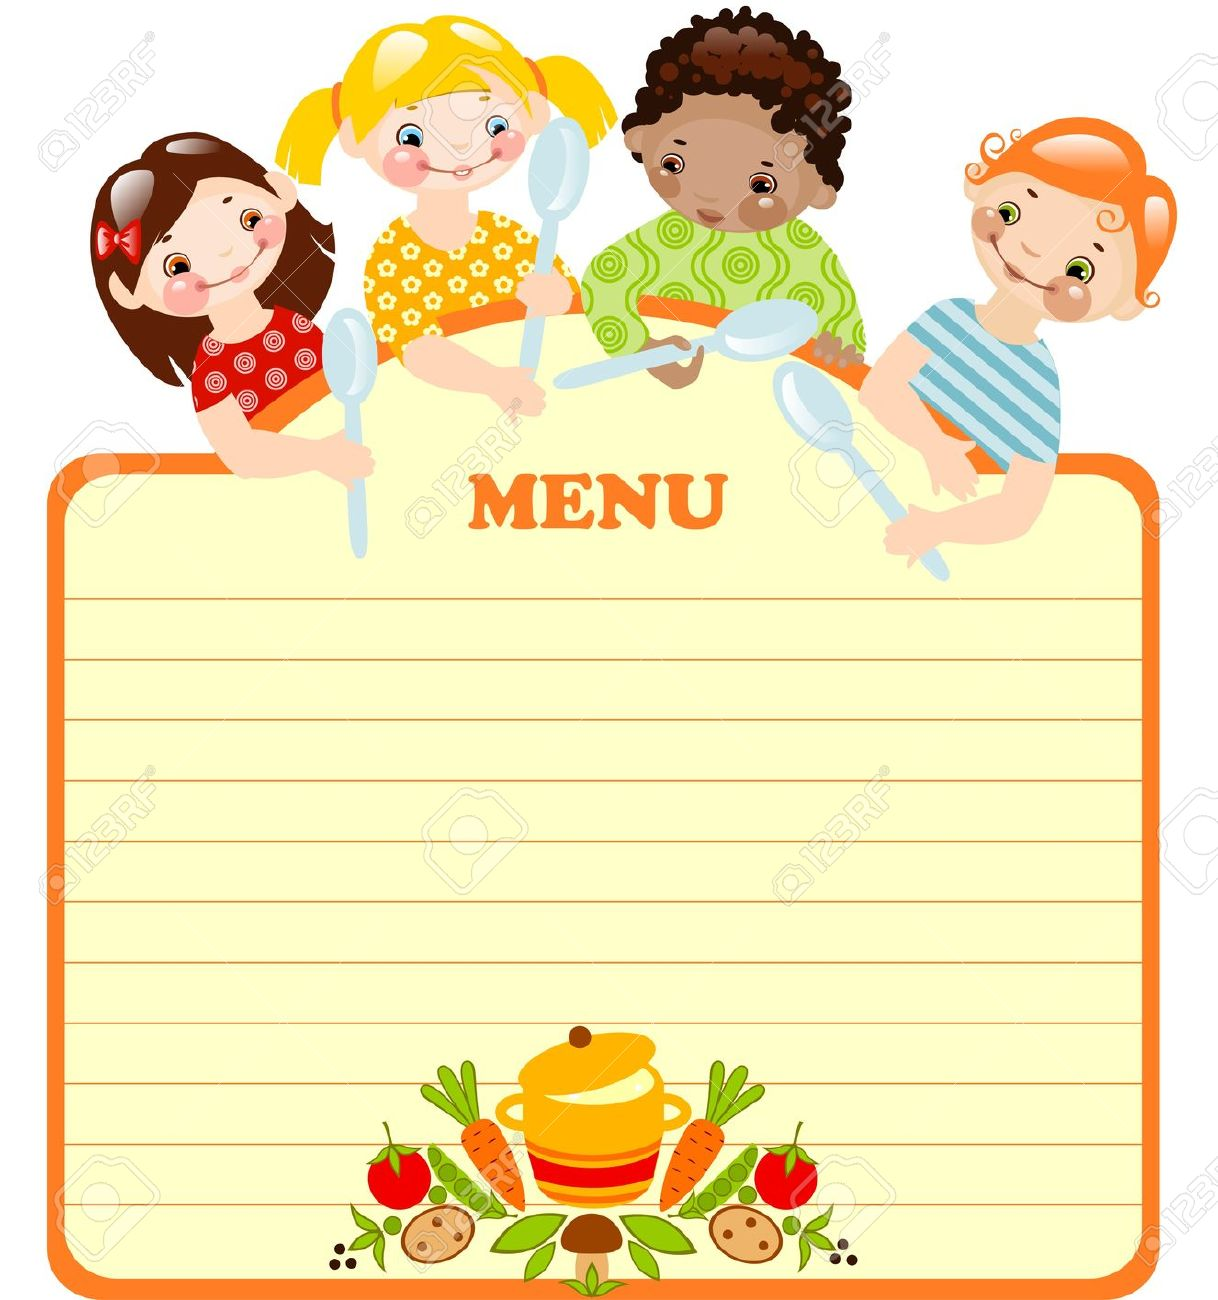 Funny Kids With Spoons.menu. Place For Your Text. Royalty Free.